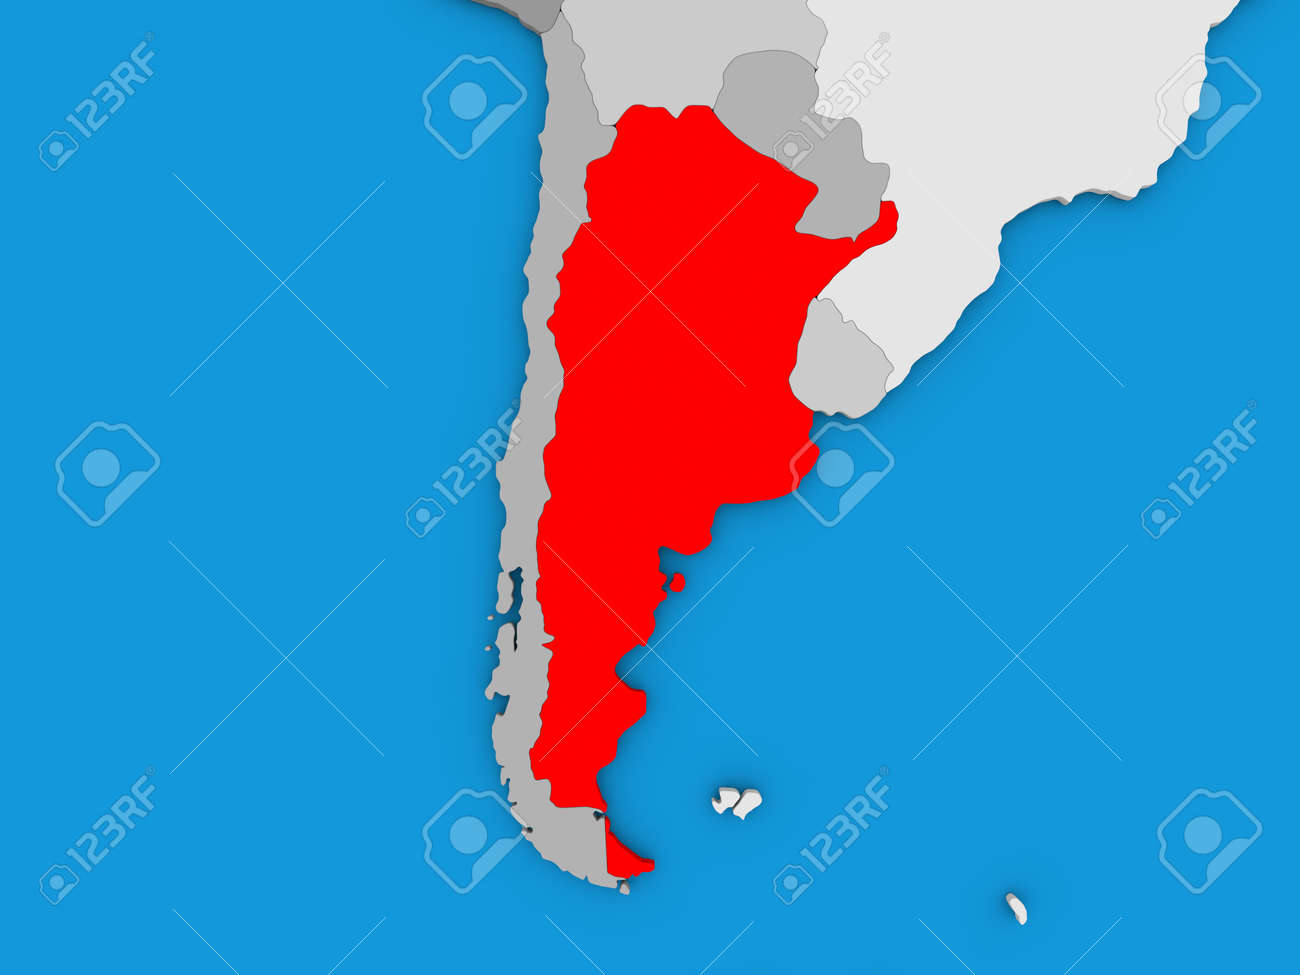 Map of argentina on globe highlighted in red 3d illustration stock illustration map of argentina on globe highlighted in red 3d illustration gumiabroncs Images